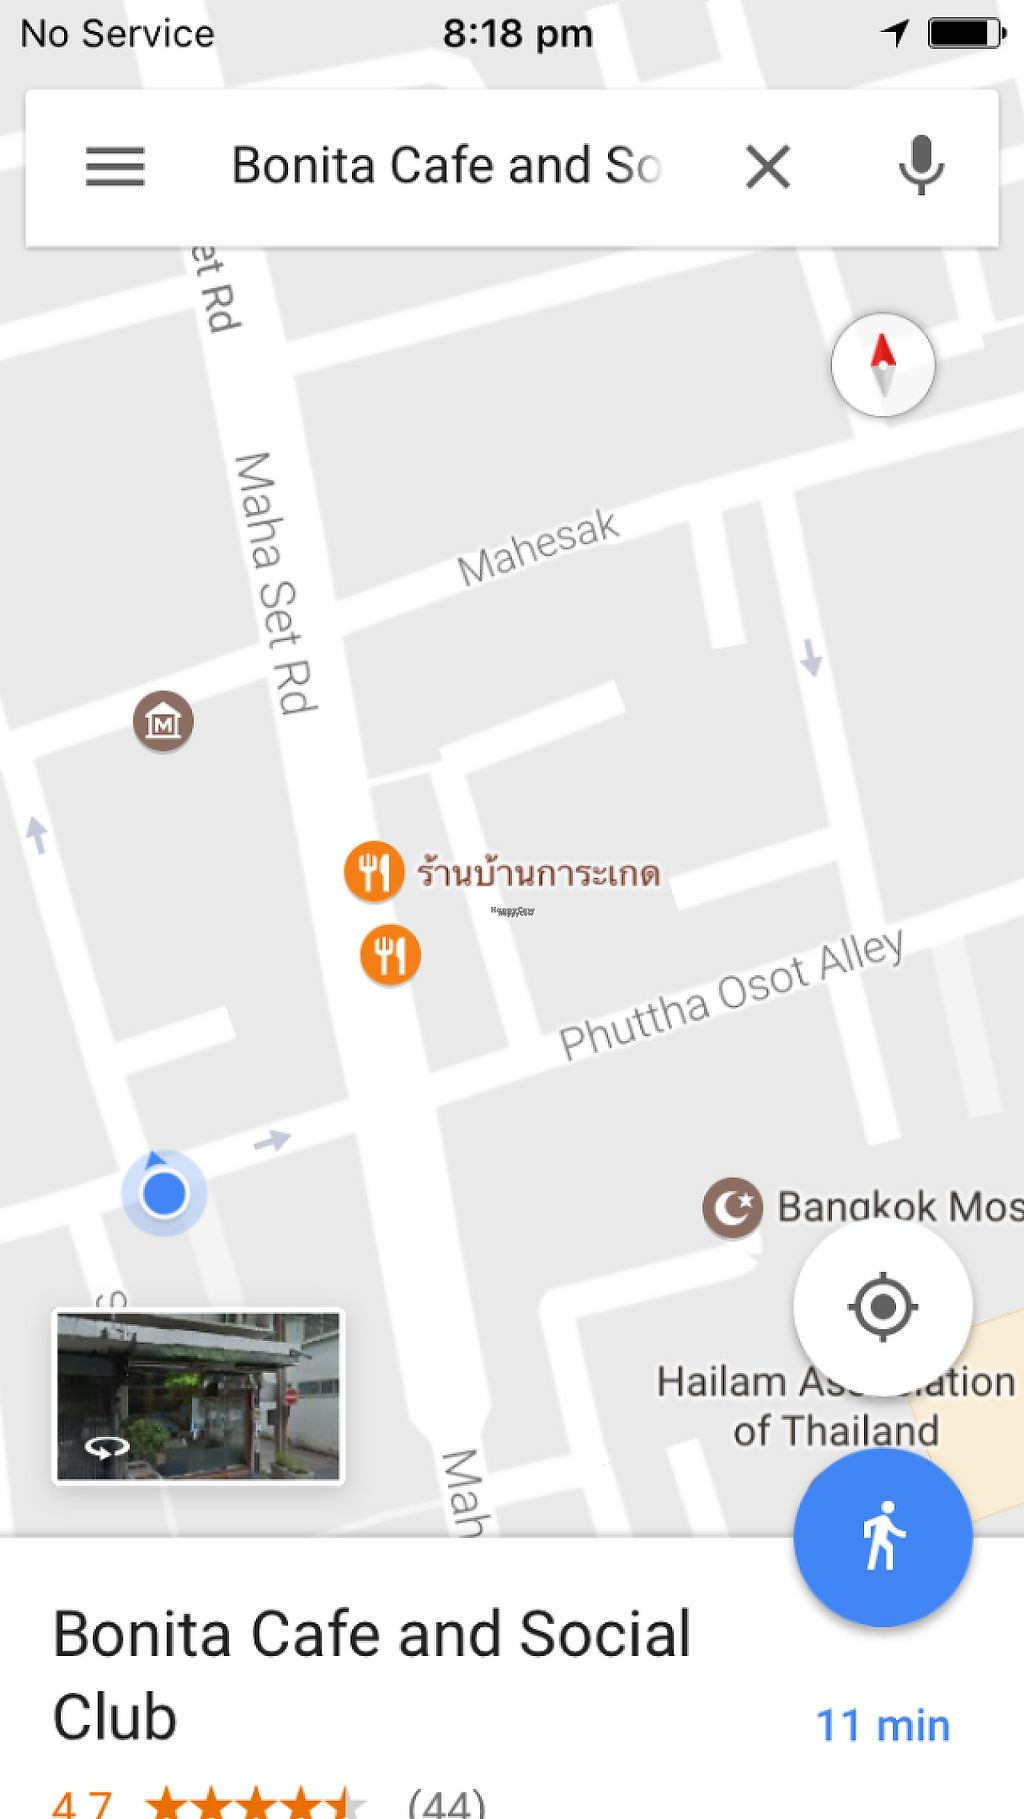 """Photo of Balaram Bhavan - Soi Liap Tai  by <a href=""""/members/profile/Tofulicious"""">Tofulicious</a> <br/>Follow the marker <br/> February 2, 2017  - <a href='/contact/abuse/image/86538/221346'>Report</a>"""